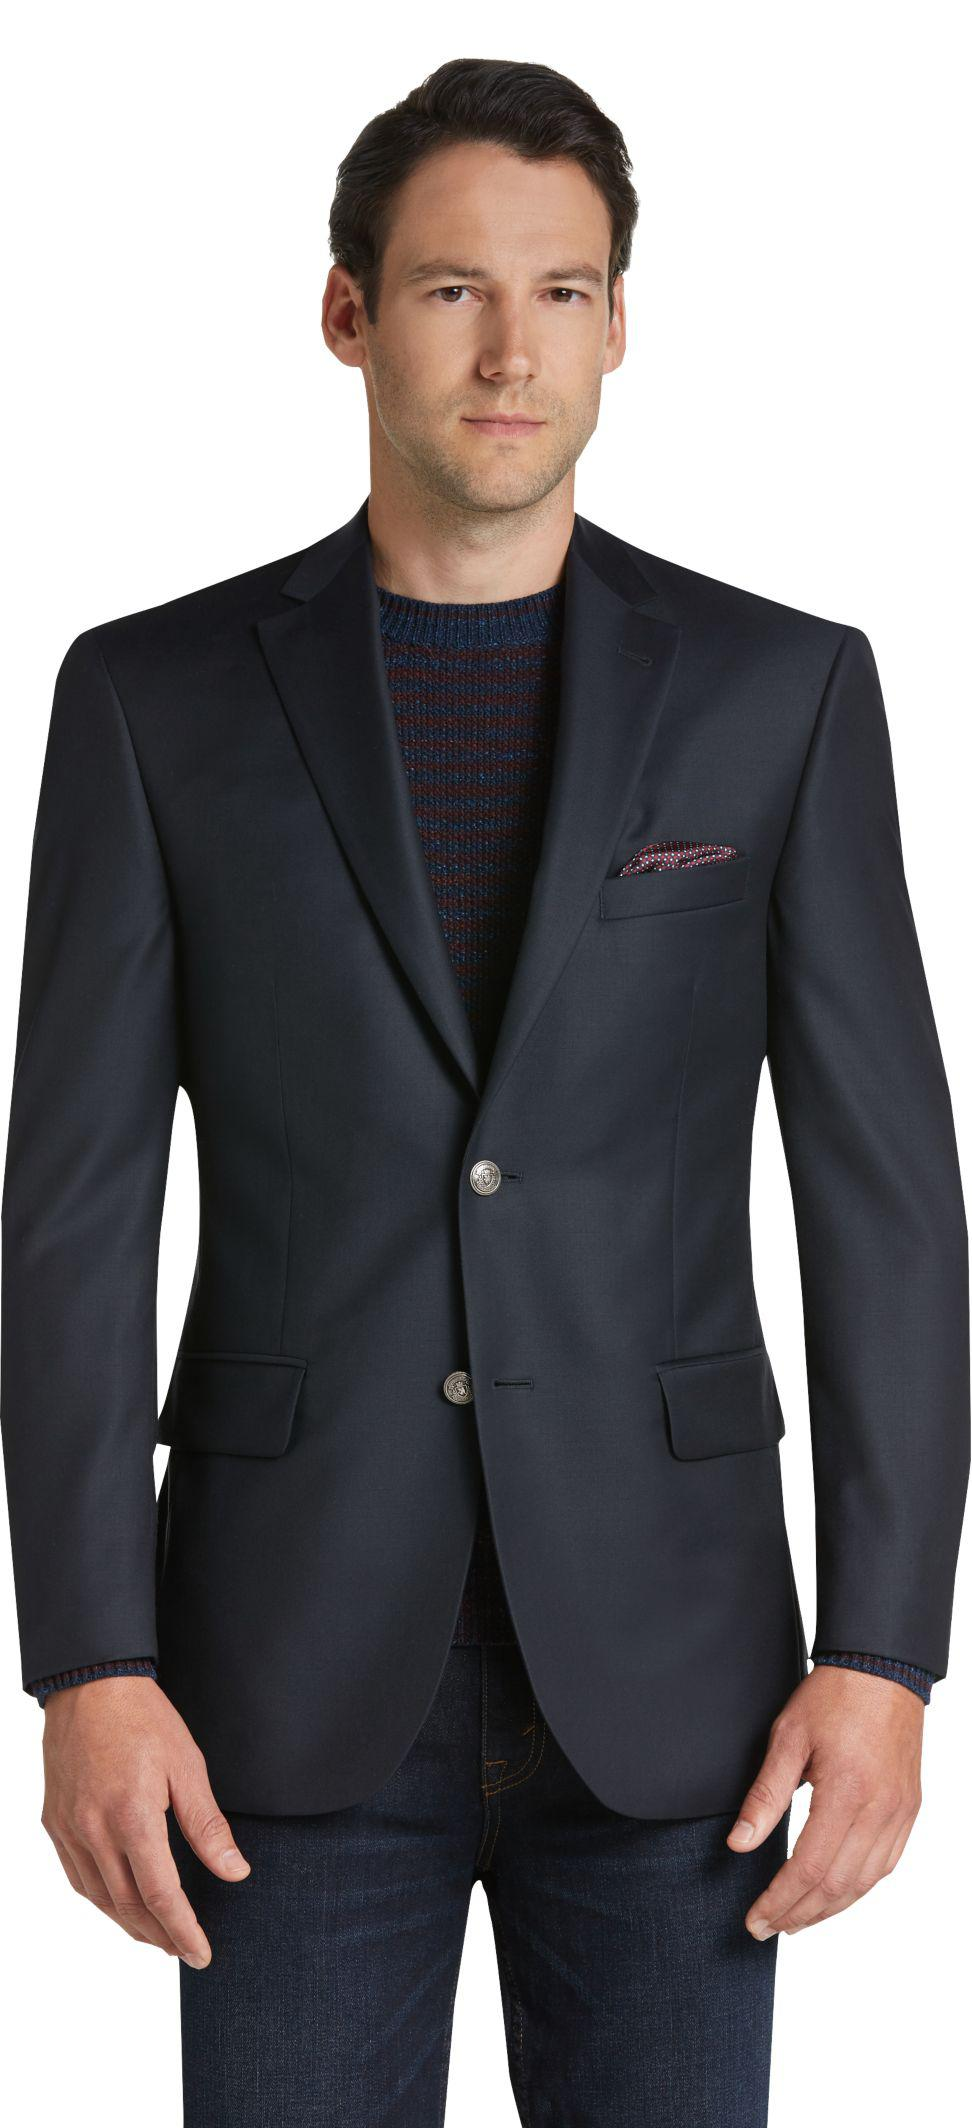 Jos a bank reserve collection tailored fit blazer in for Jos a bank tailored fit vs slim fit shirts